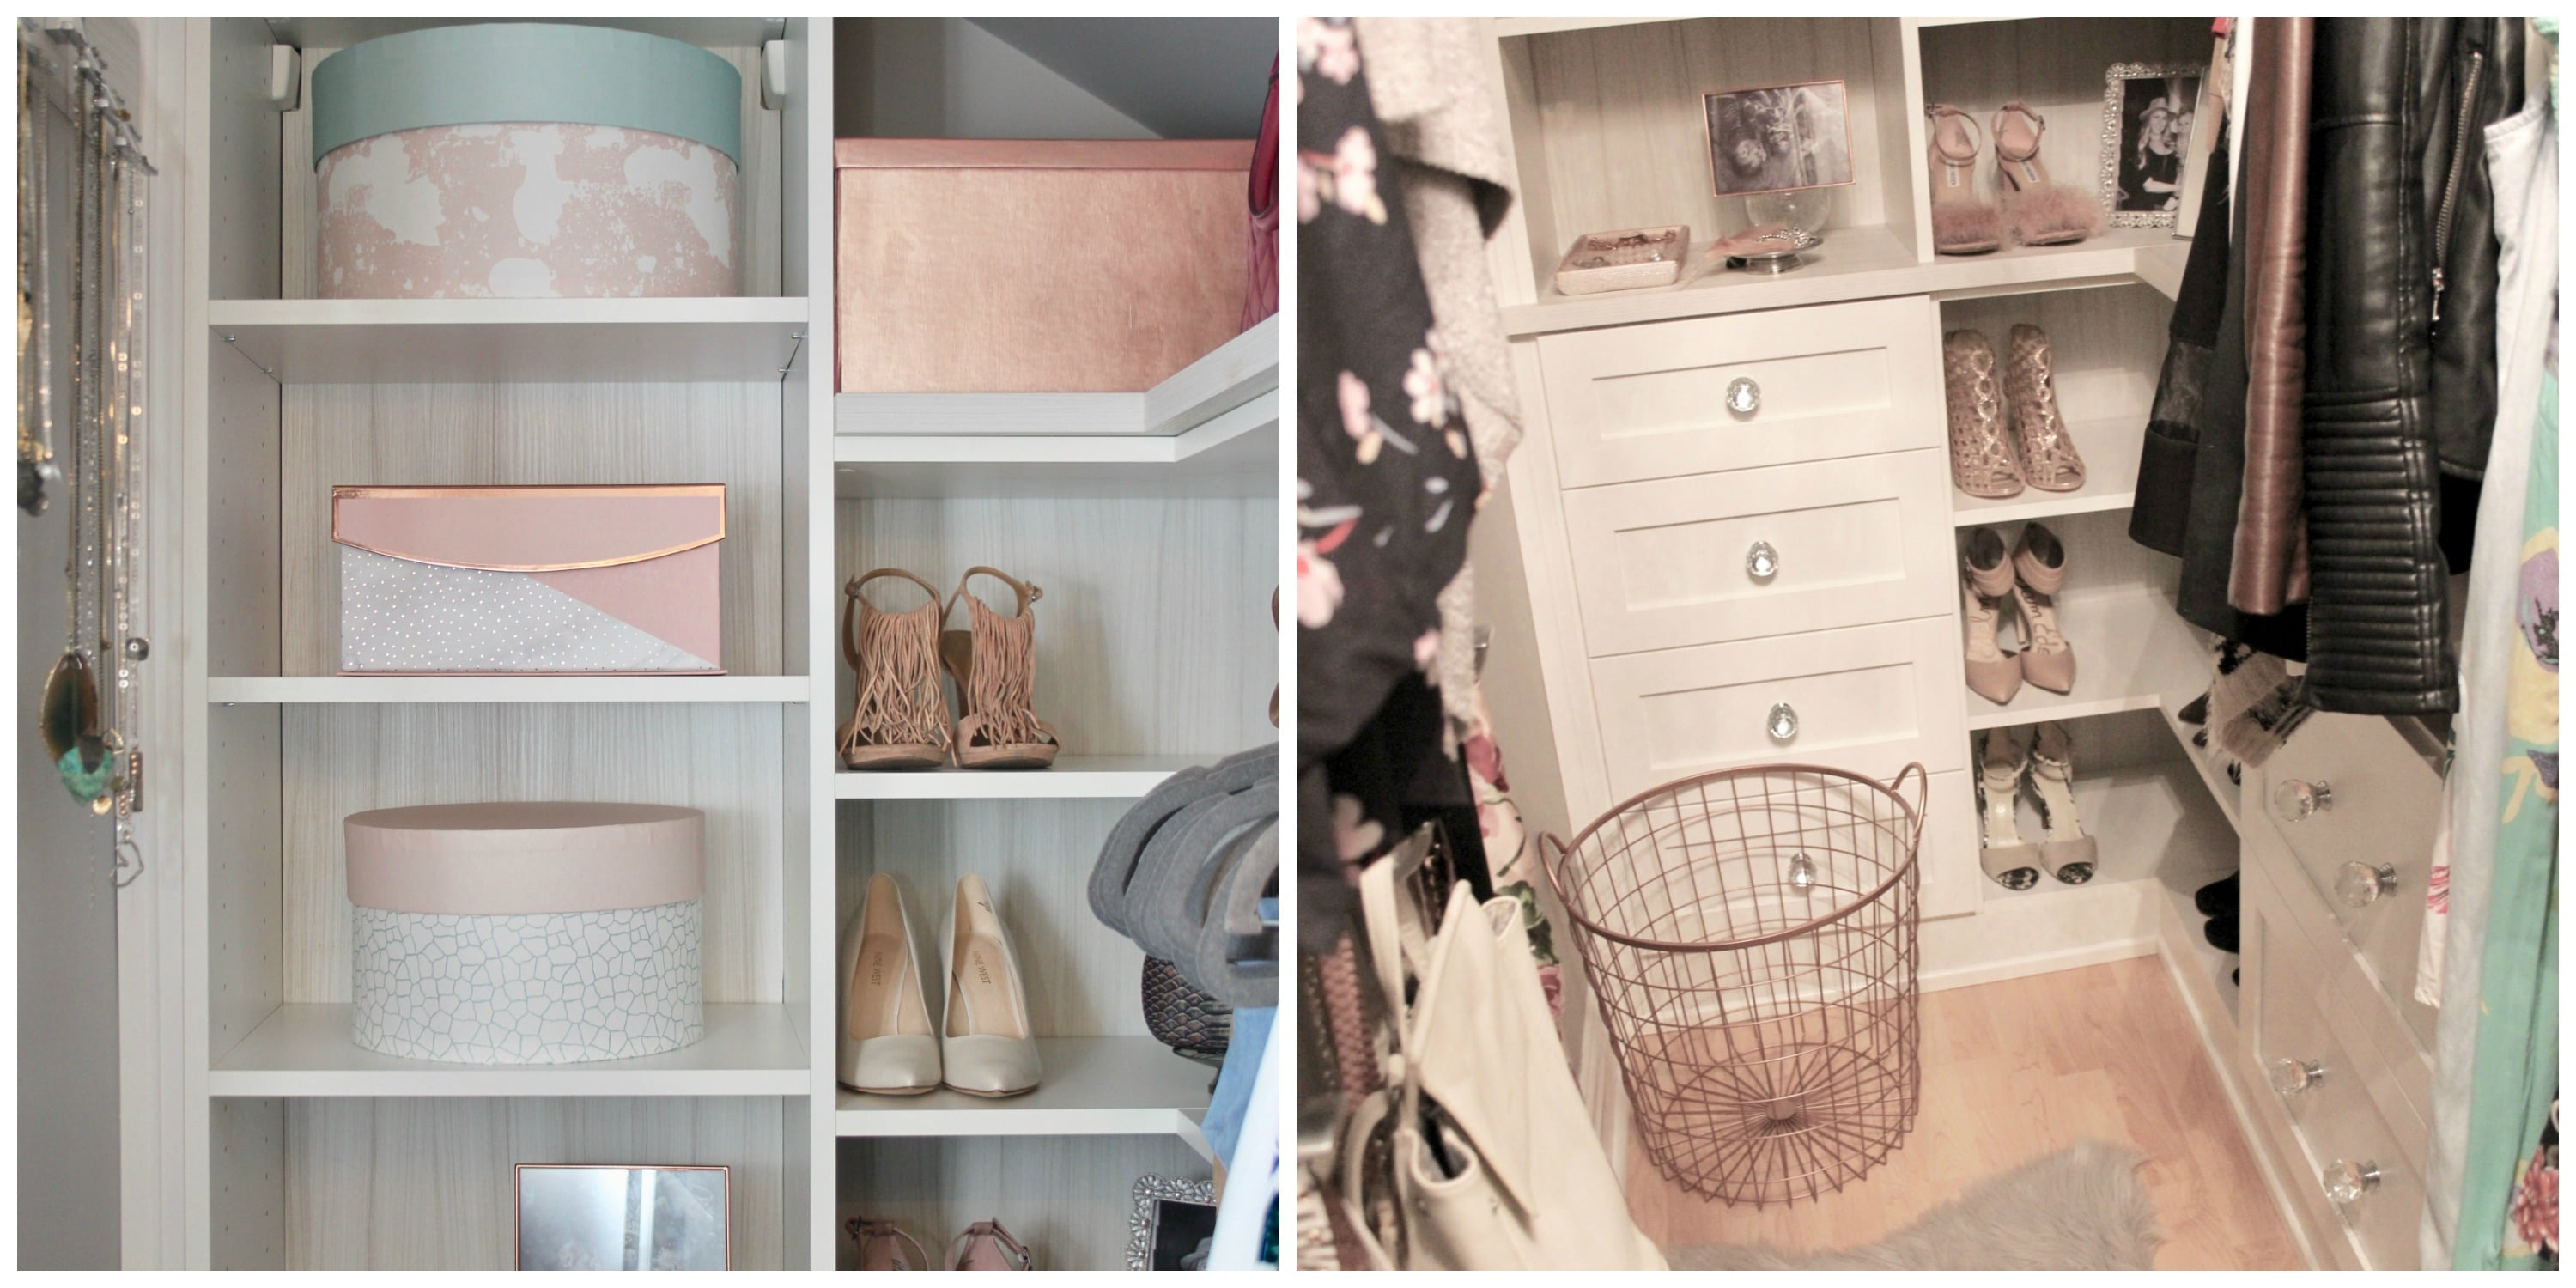 Dream closet reveal-12